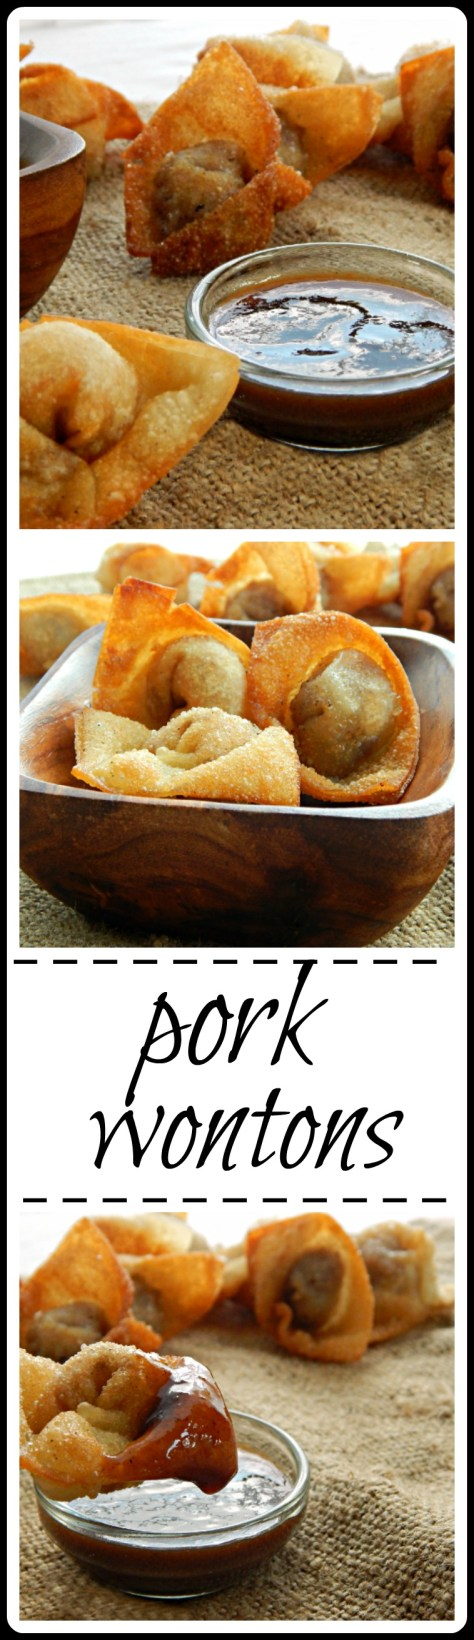 Pork Wontons: frying can be a mess but thee are worth the bother! Insanely good.